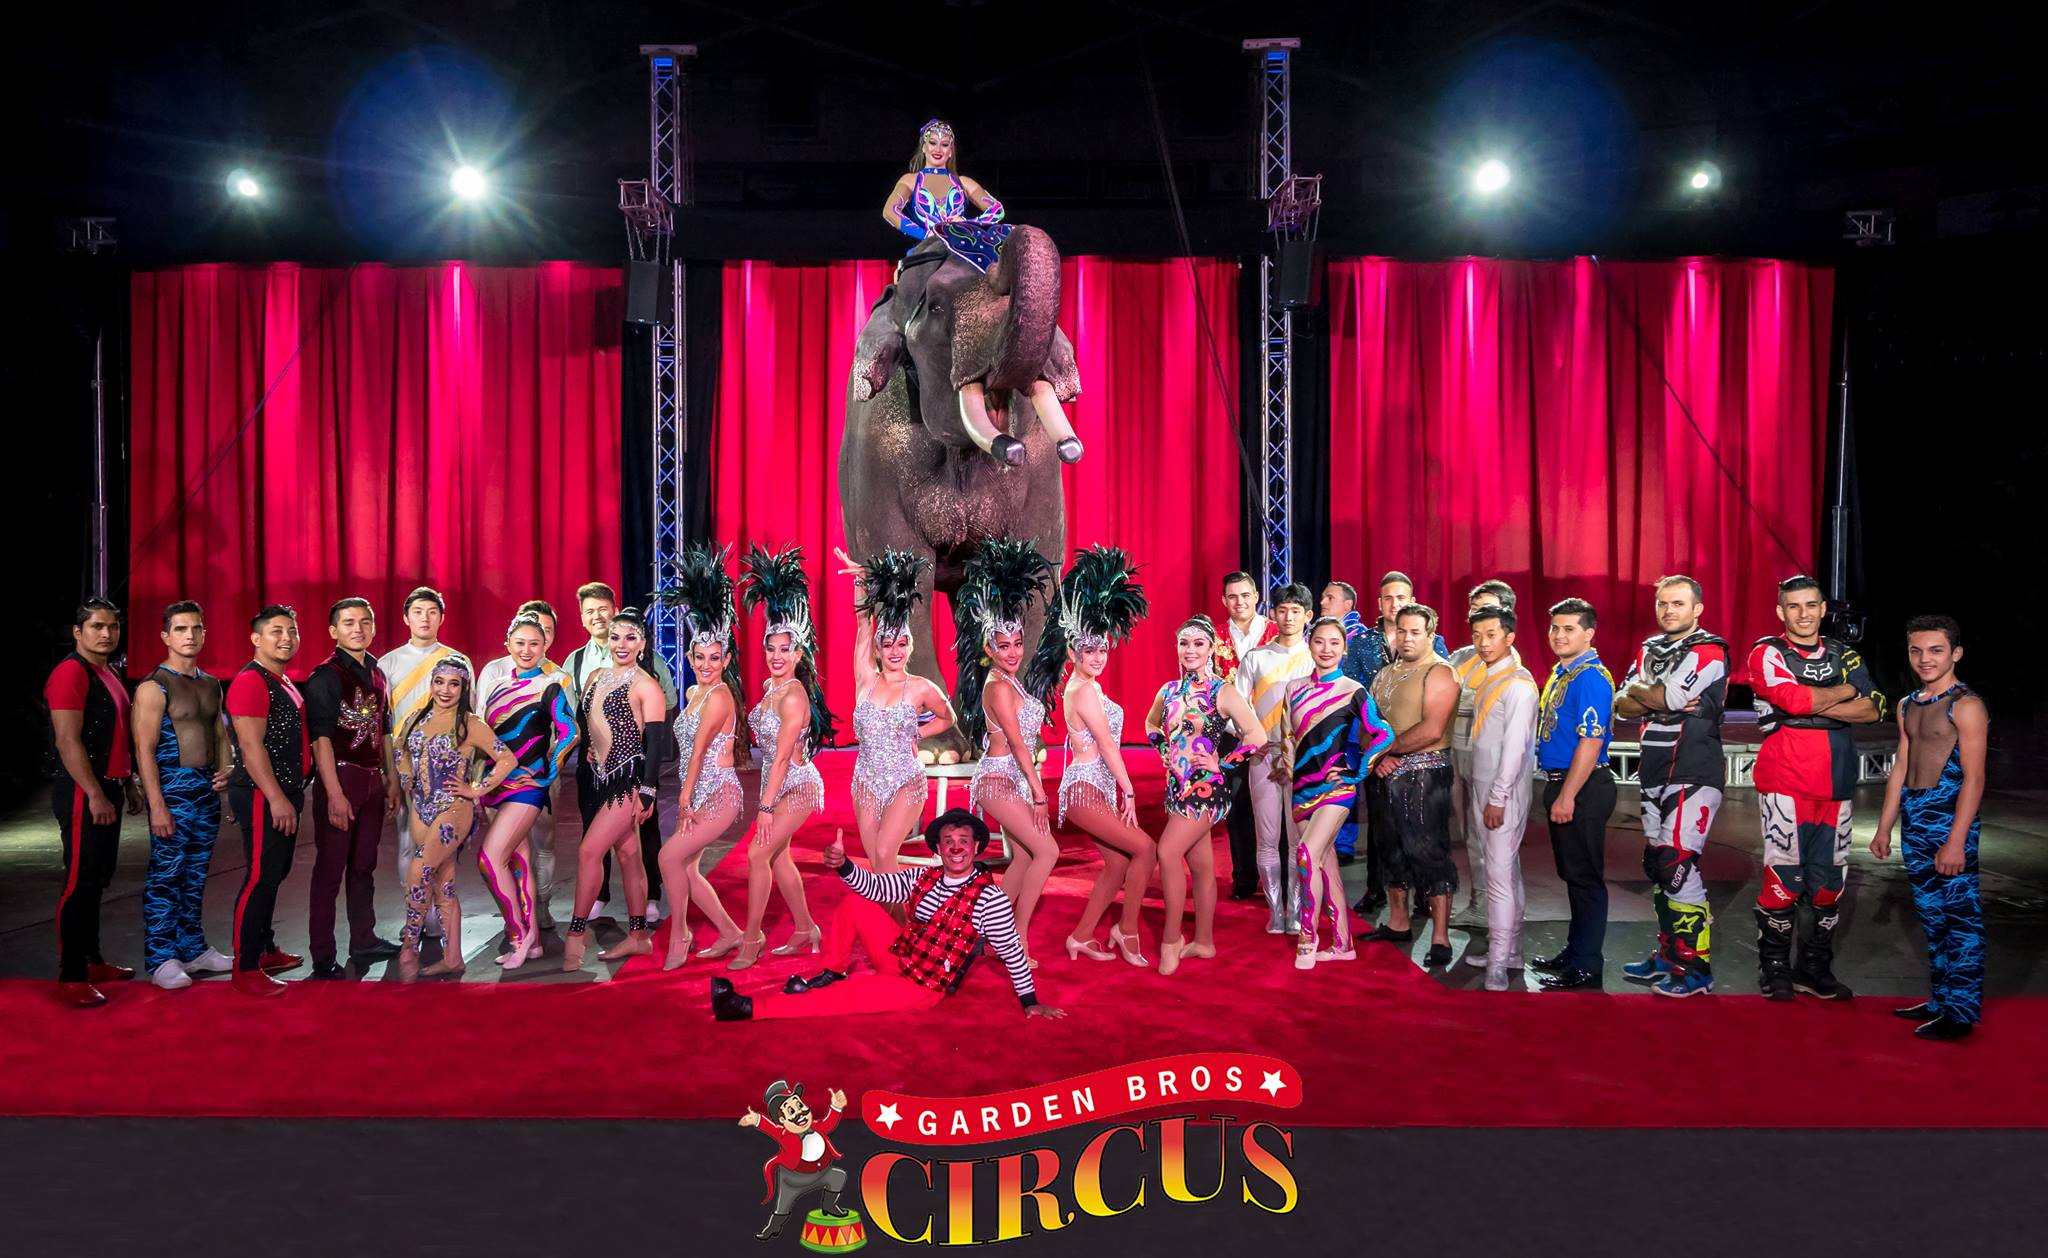 Garden Bros Circus at Columbus Civic Center